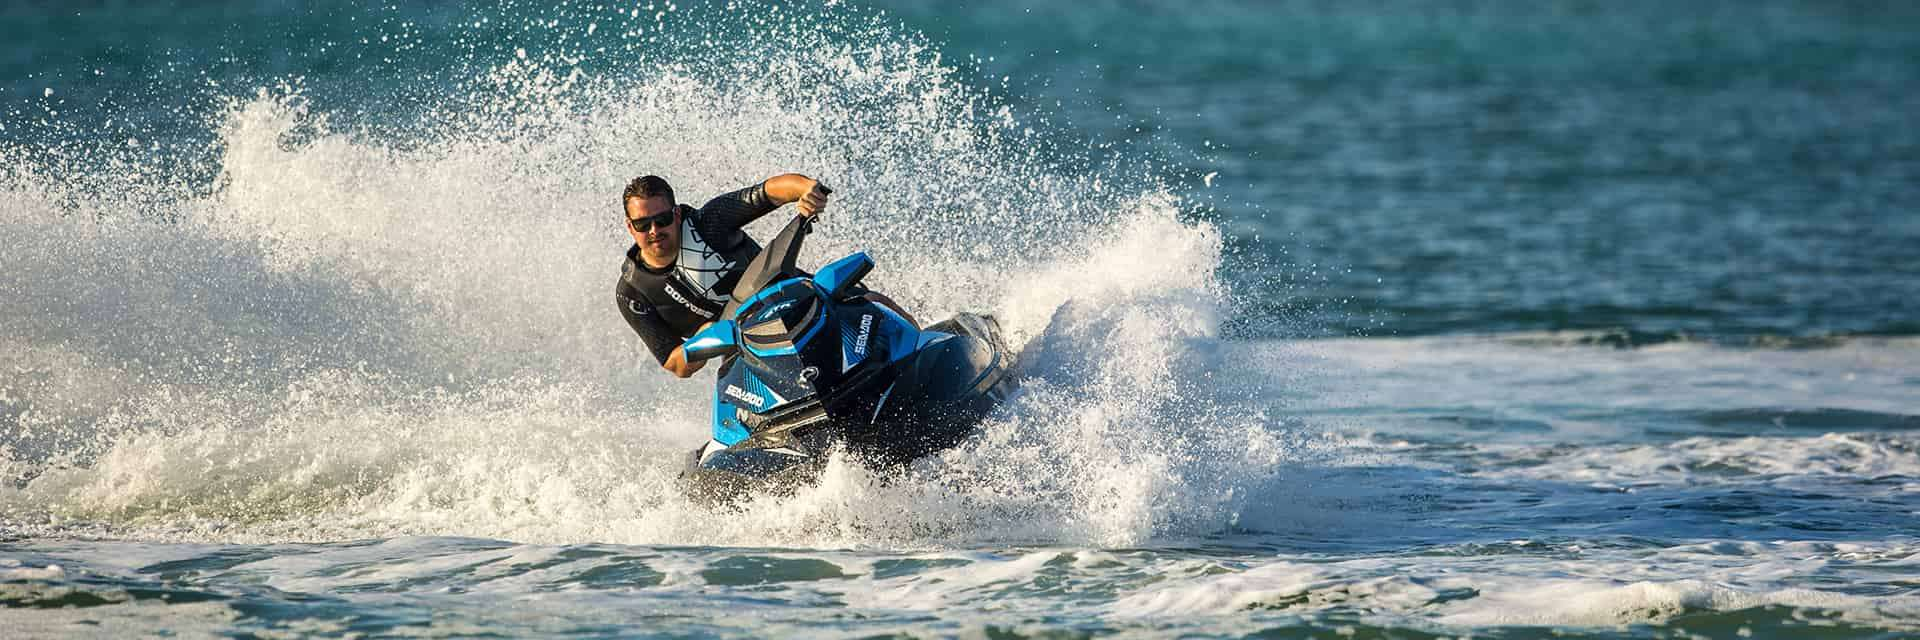 Sea-Doo is available at Allegheny Ridge Cycle | Windber, PA